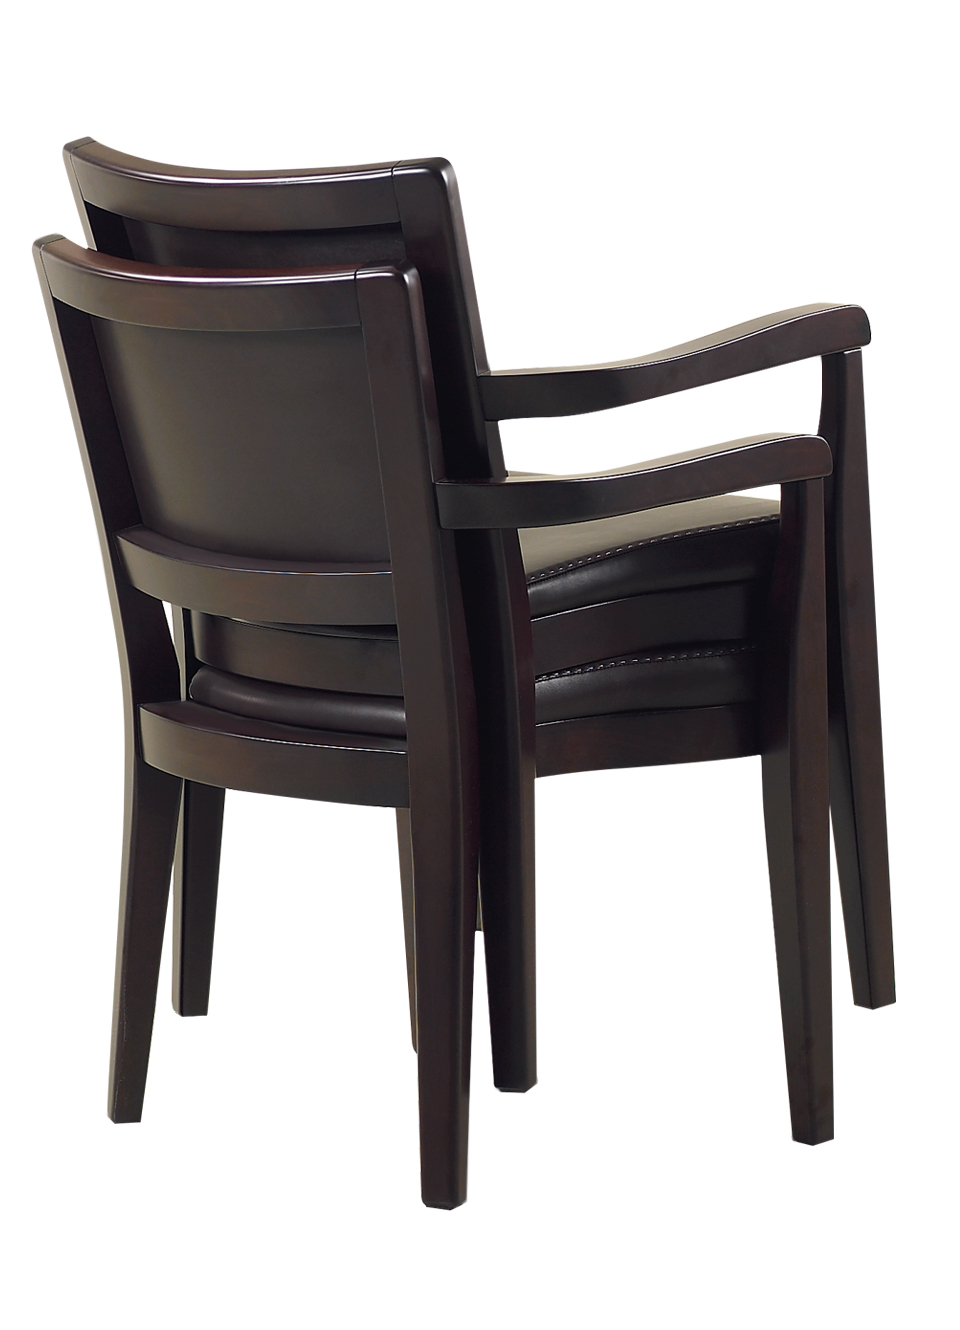 Stacked Bistrot chairs, wooden dining chairs, with armrests and fabric or leather seat and back, from Promemoria's catalogue | Promemoria